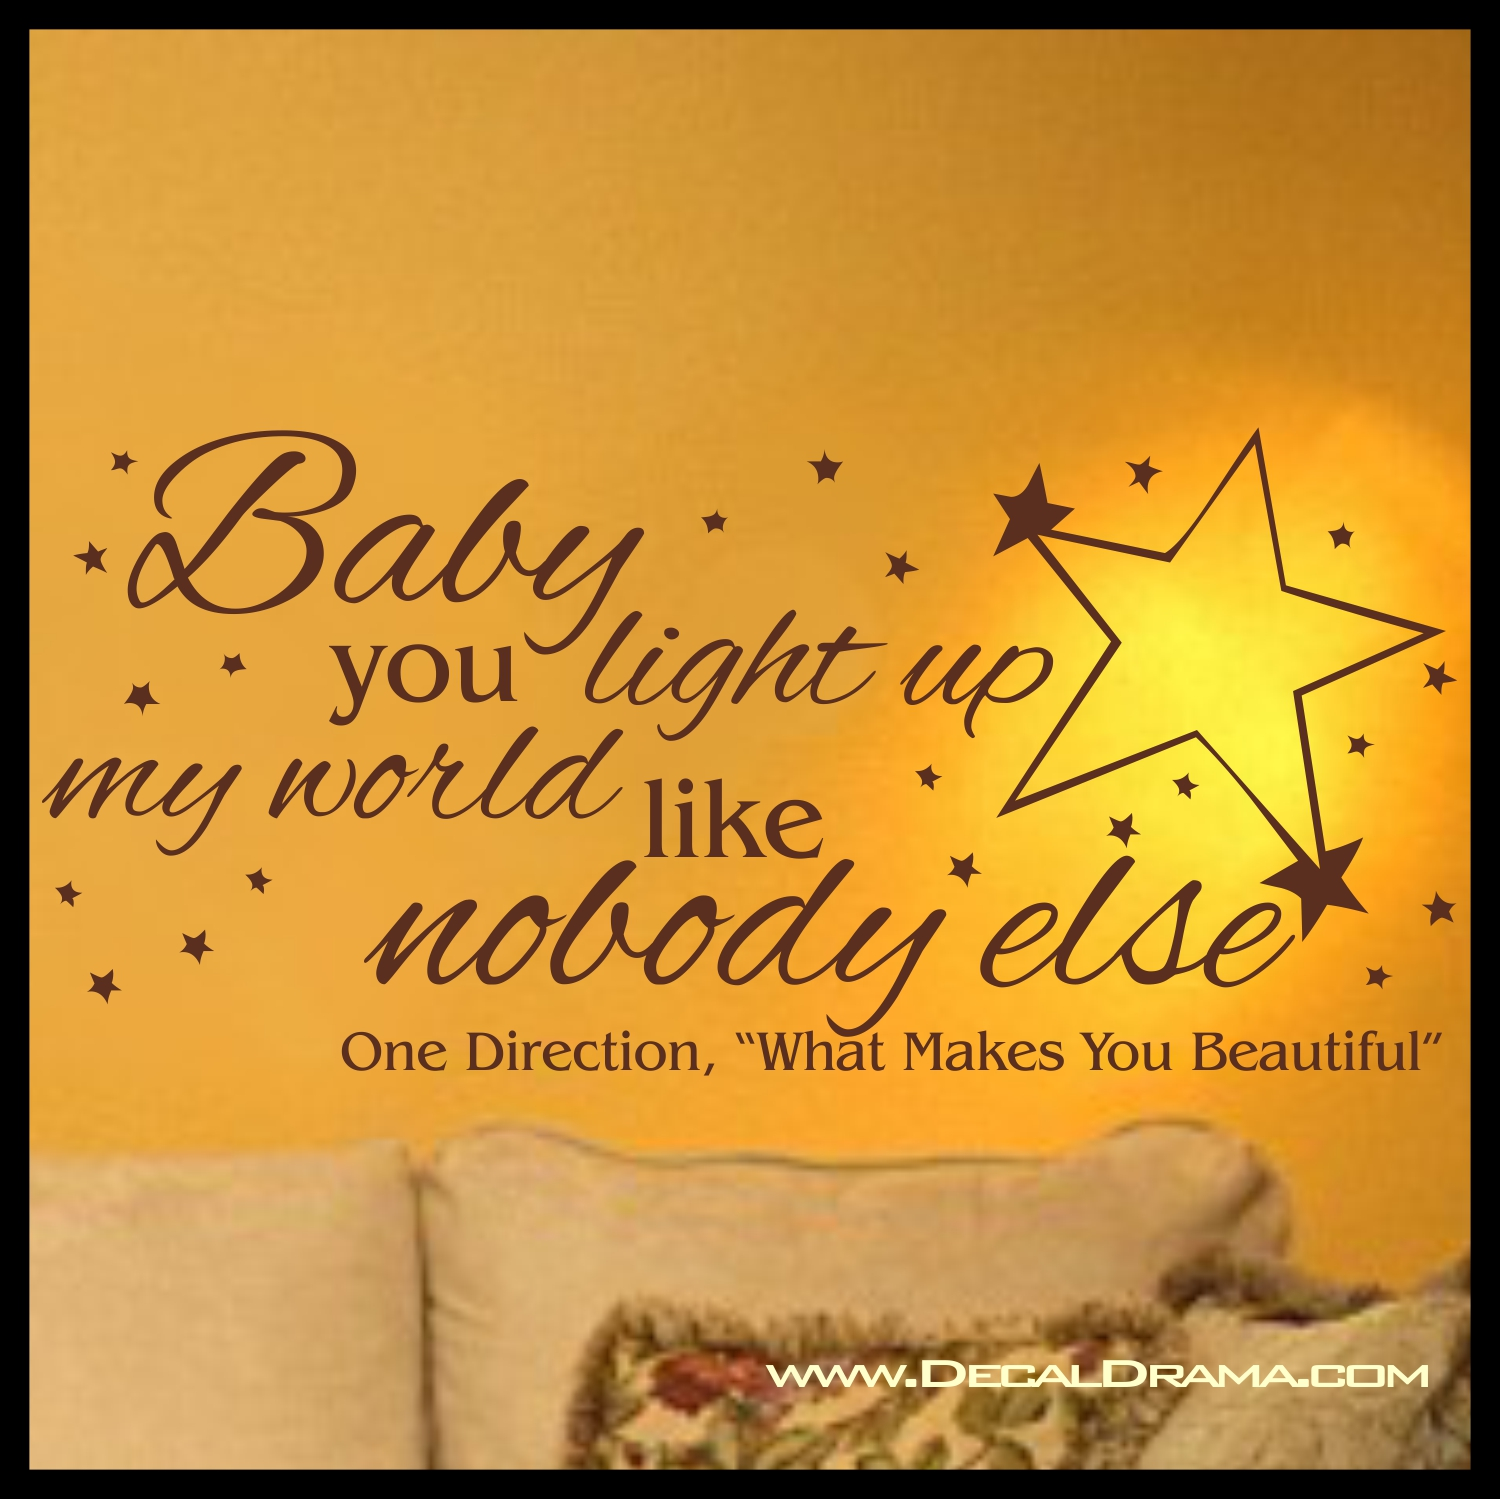 One direction... baby you light up my world(8) - YouTube